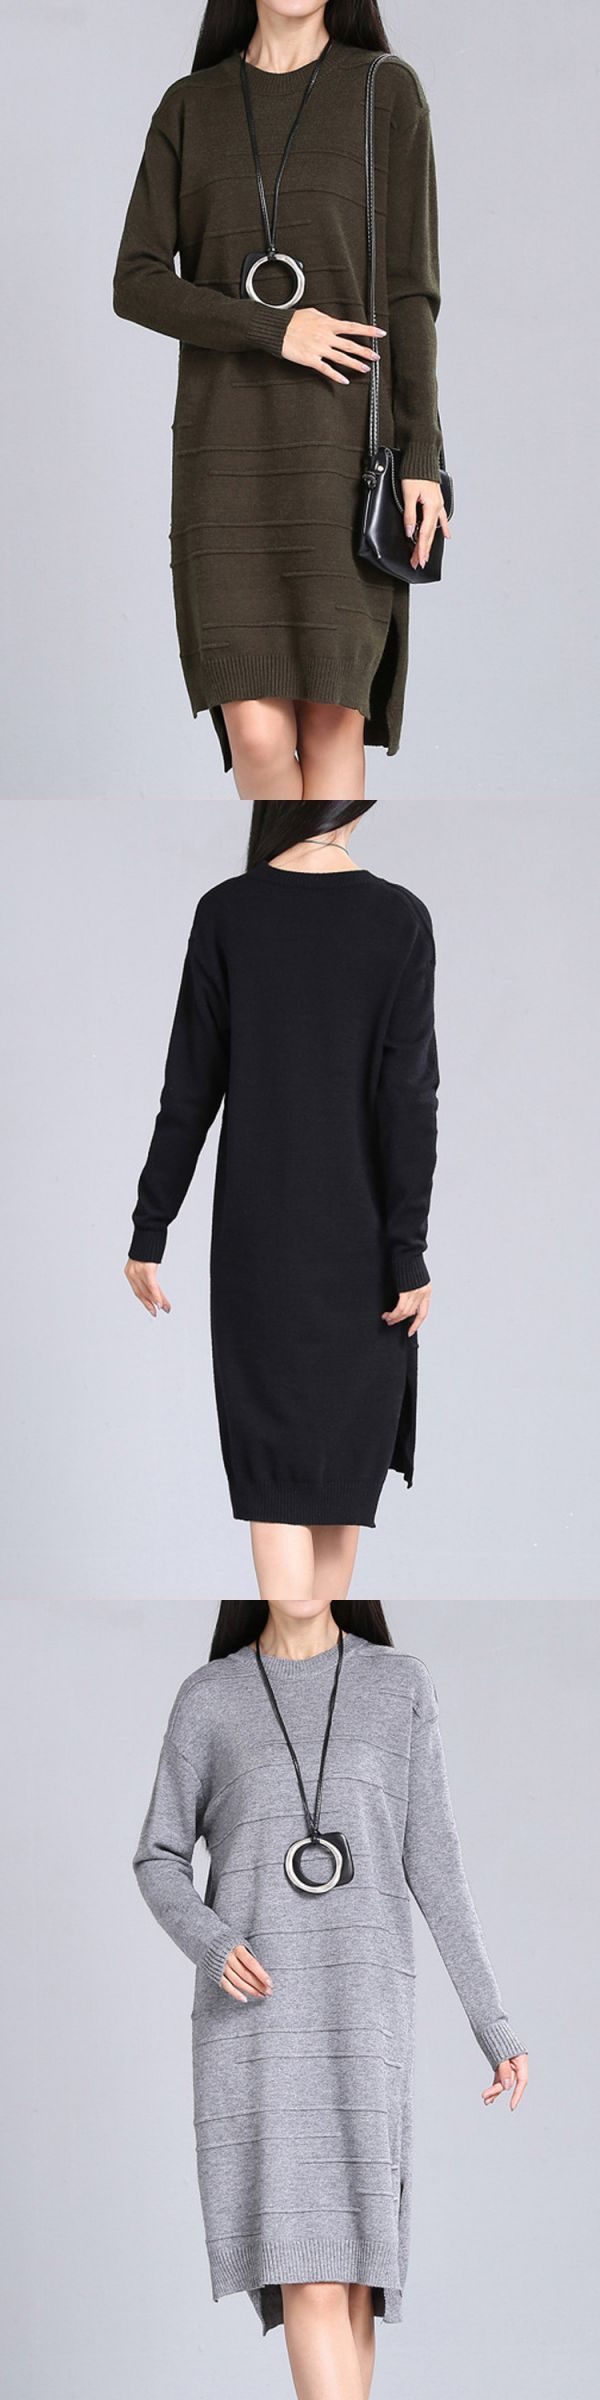 Polo neck dress with long sleeves uk national lottery